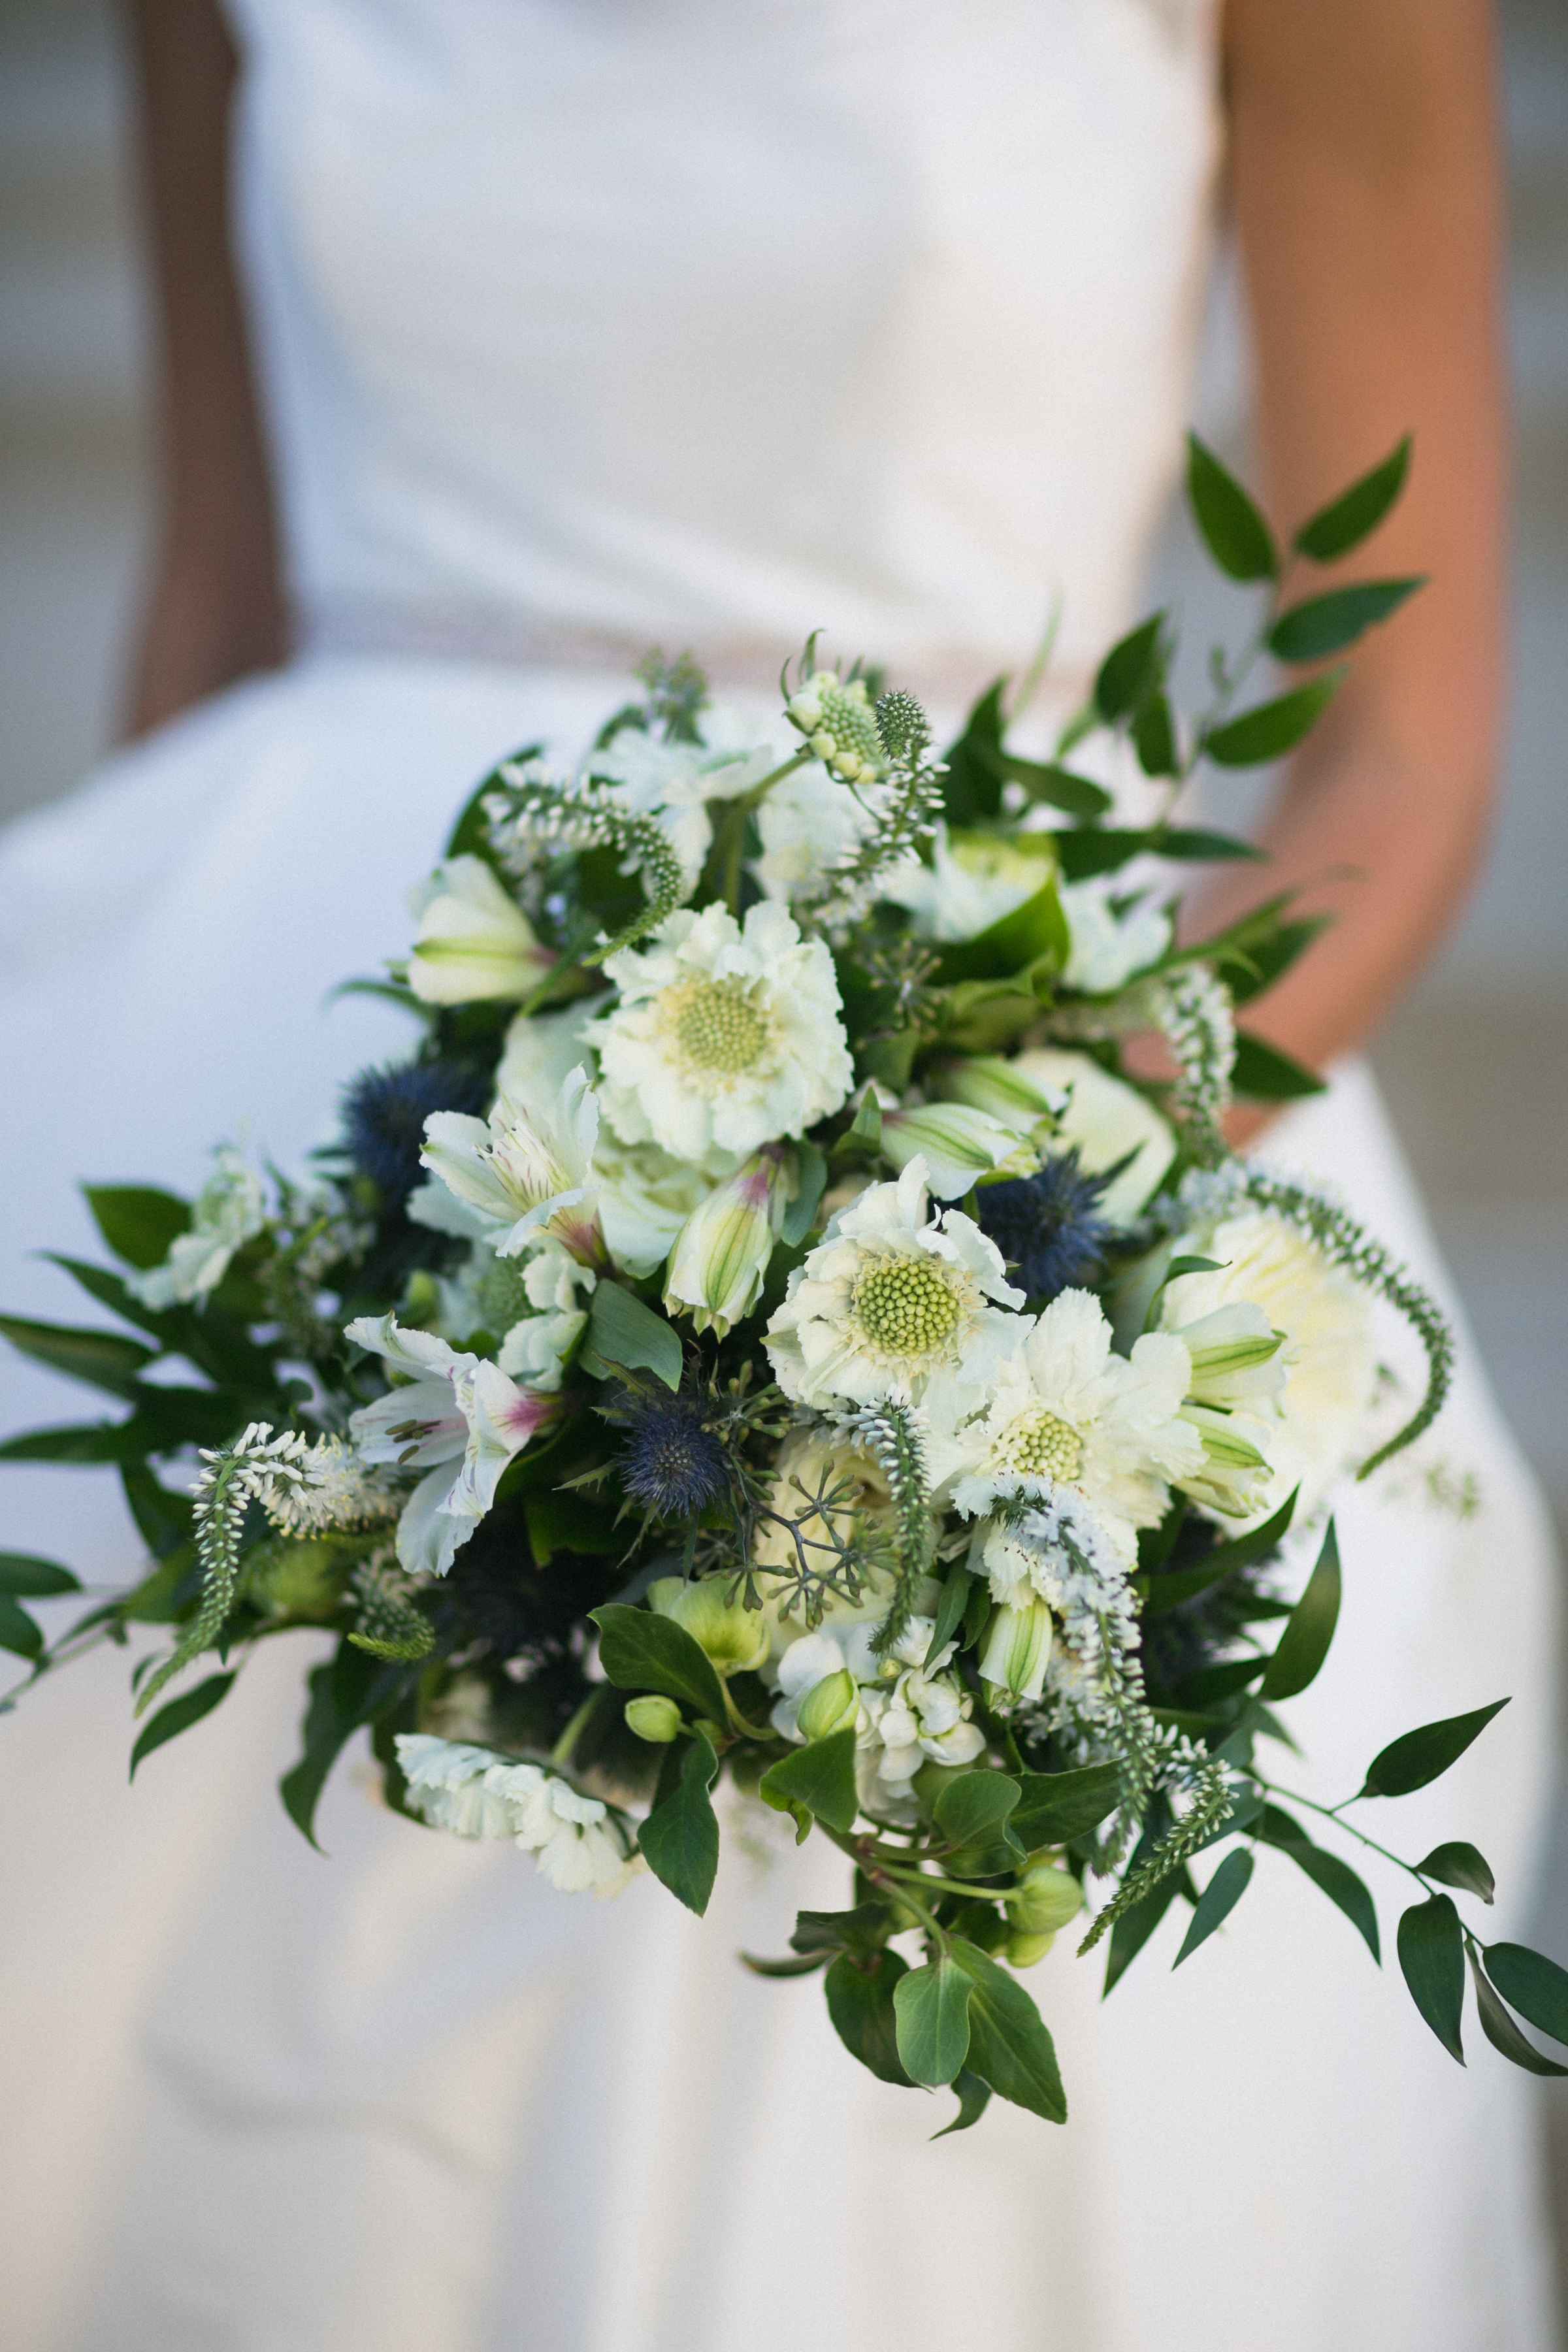 Bridal Bouquet White with Loose Greens at The Monastery